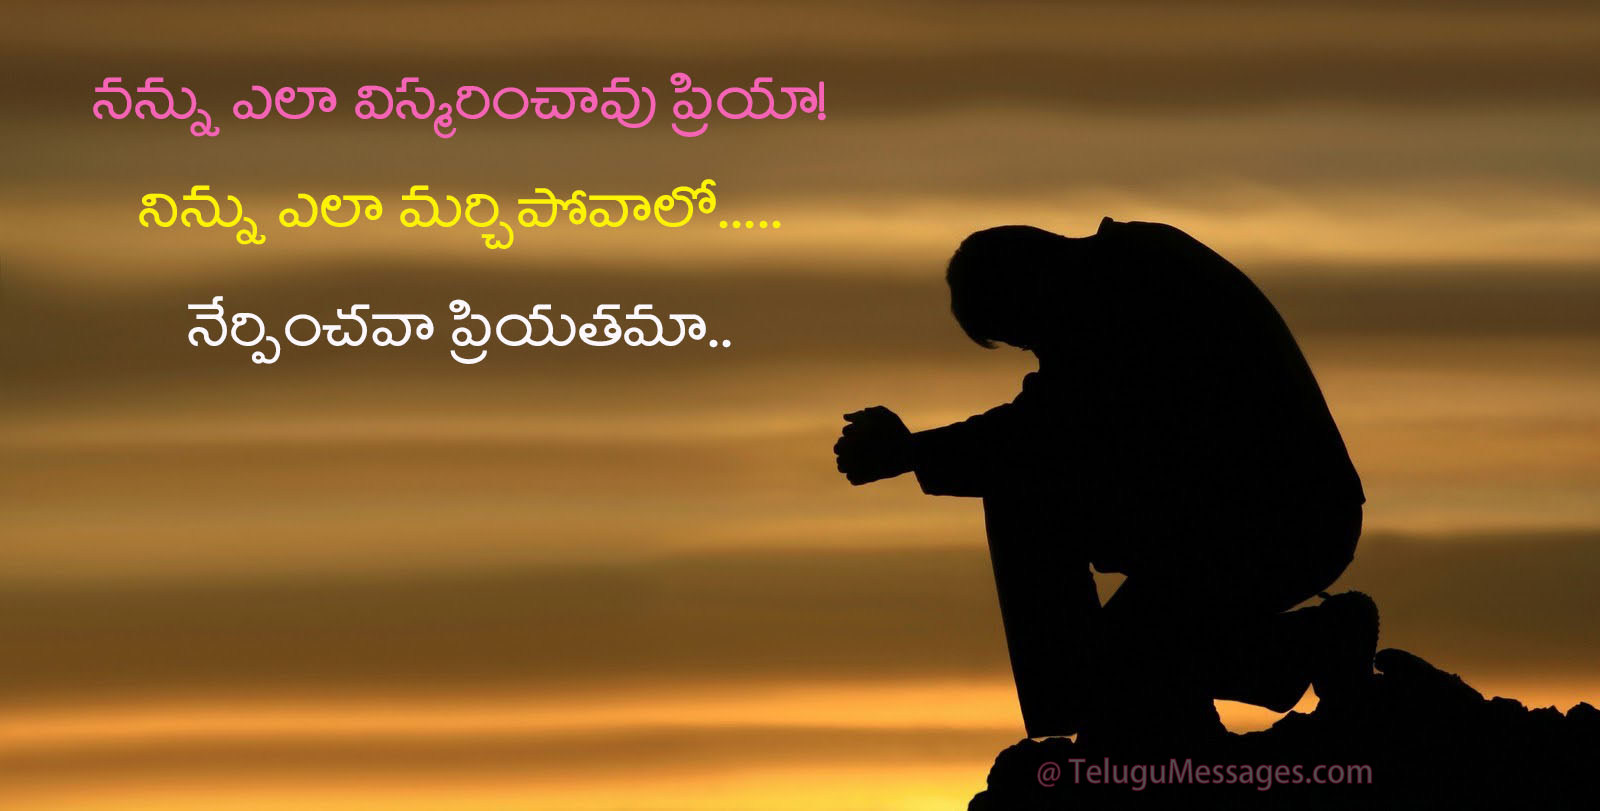 Telugu Love Quotes Telugu Text Quotes On Love  Free Download  Good Morning Quotes